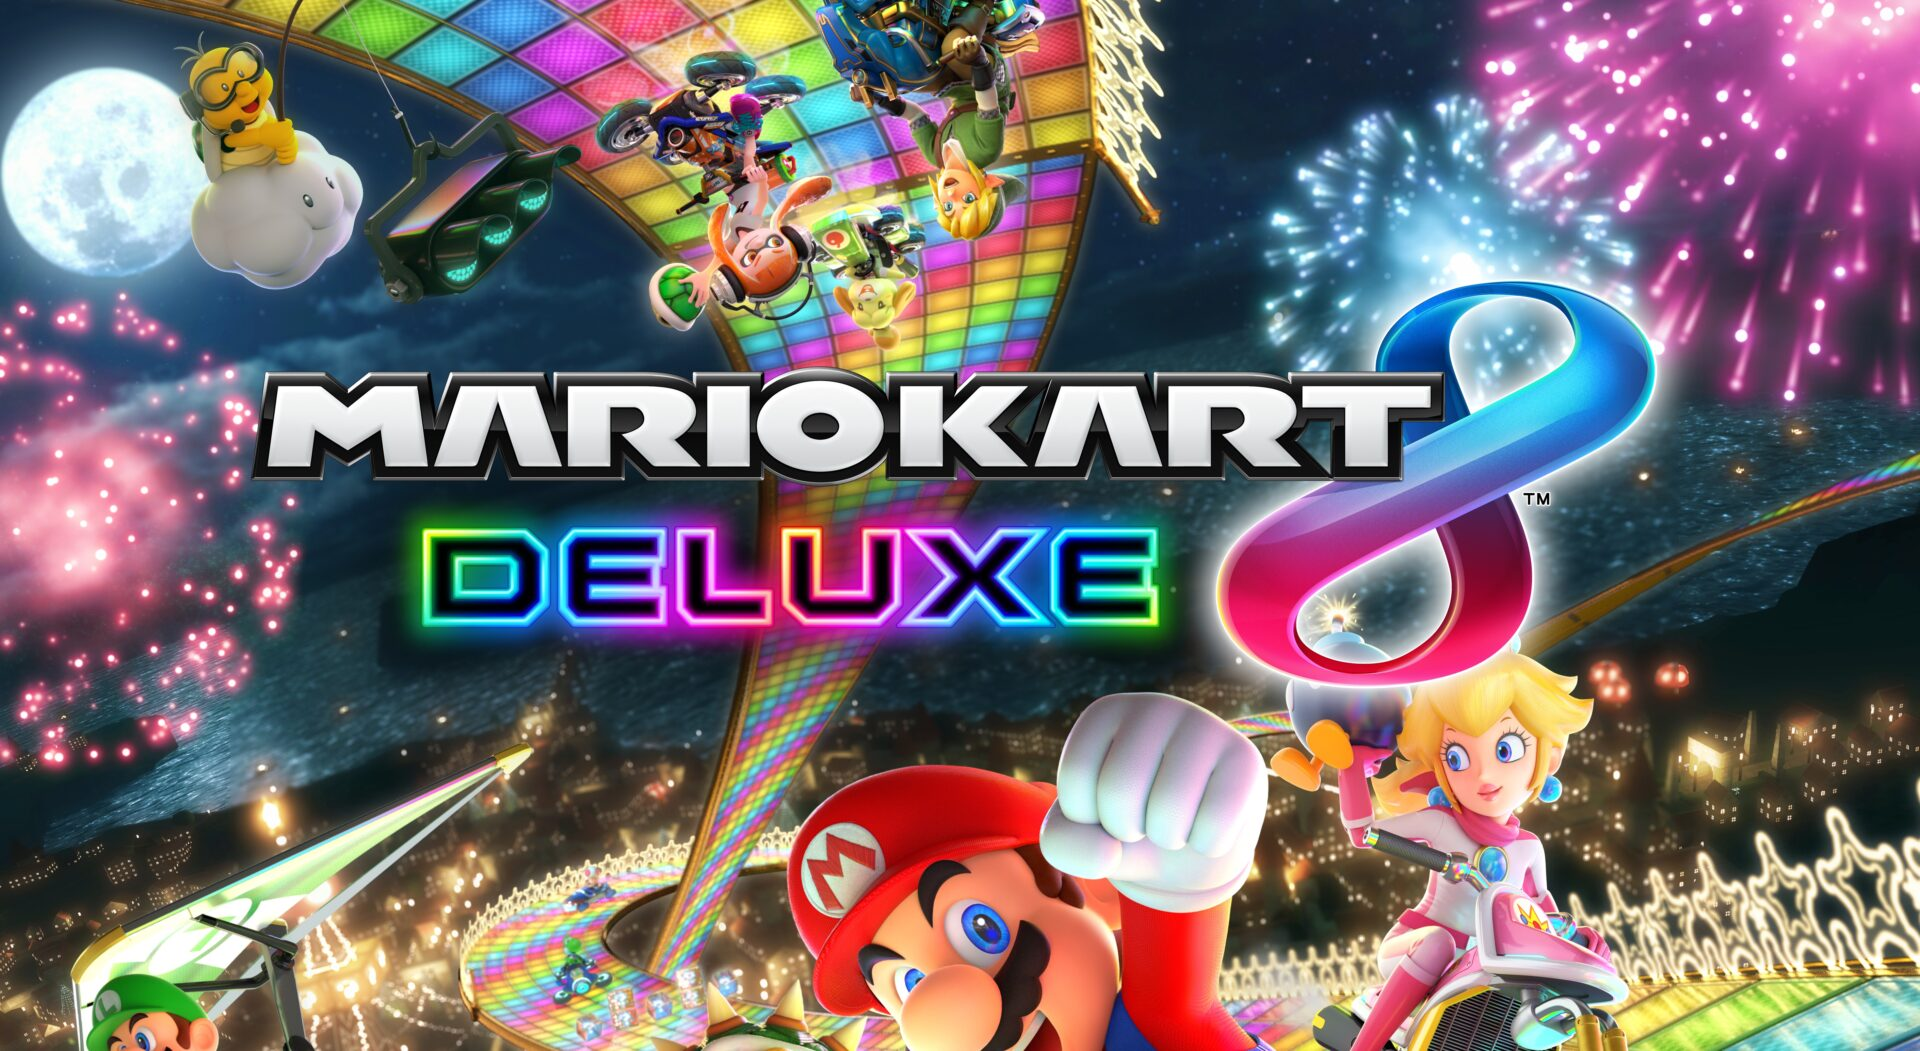 mario kart 8 deluxe releases april 28 runs at 1080p docked features new modes tracks characters. Black Bedroom Furniture Sets. Home Design Ideas